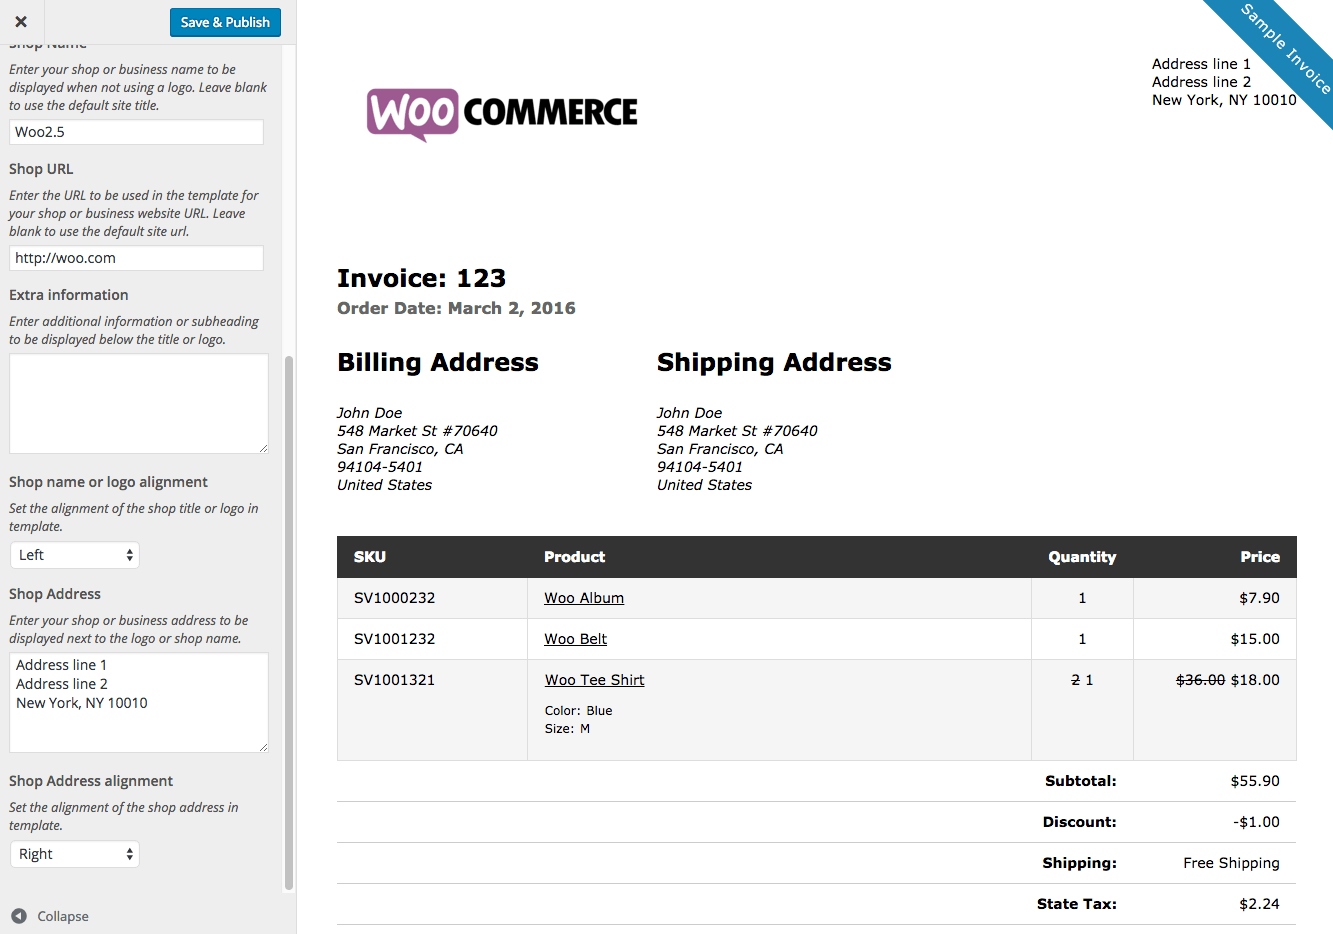 Angkajituus  Pleasant Woocommerce Print Invoices Amp Packing Lists  Woocommerce Docs With Excellent Woocommerce Print Invoices  Packing Lists Customizer With Enchanting Army Hand Receipt Example Also Receipt Format Word In Addition  C  Donation Receipt And How To Track A Money Order Without A Receipt As Well As Request A Read Receipt Additionally Custom Sales Receipts From Docswoocommercecom With Angkajituus  Excellent Woocommerce Print Invoices Amp Packing Lists  Woocommerce Docs With Enchanting Woocommerce Print Invoices  Packing Lists Customizer And Pleasant Army Hand Receipt Example Also Receipt Format Word In Addition  C  Donation Receipt From Docswoocommercecom